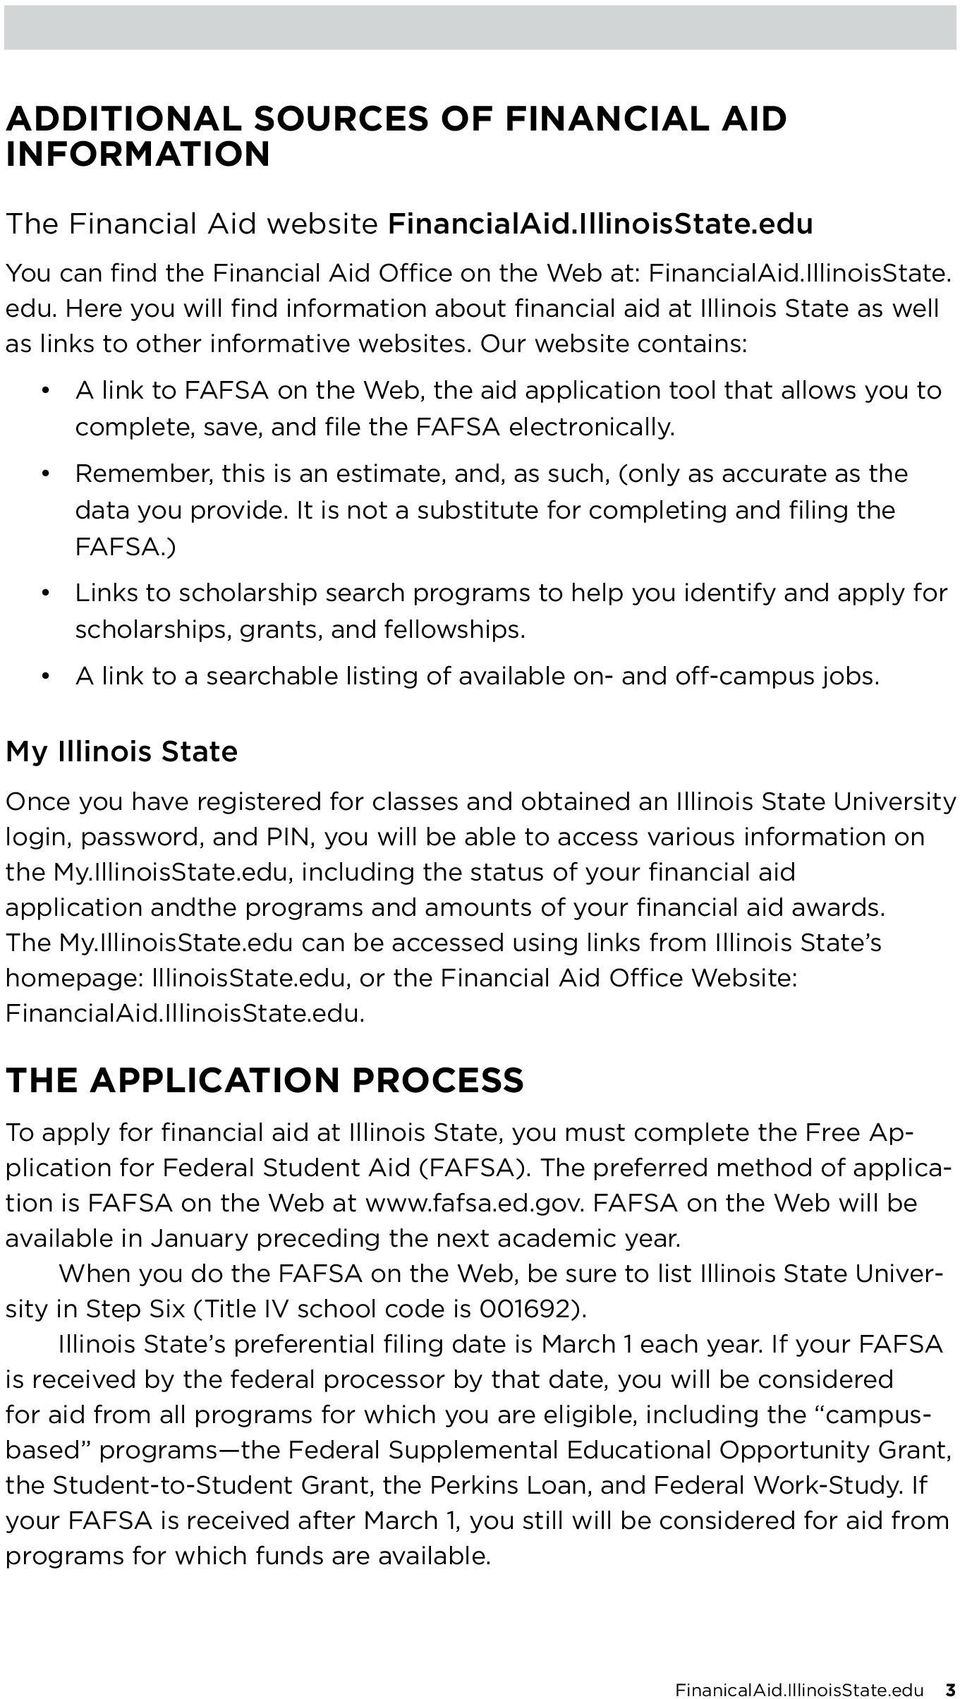 Our website contains: A link to FAFSA on the Web, the aid application tool that allows you to complete, save, and file the FAFSA electronically.